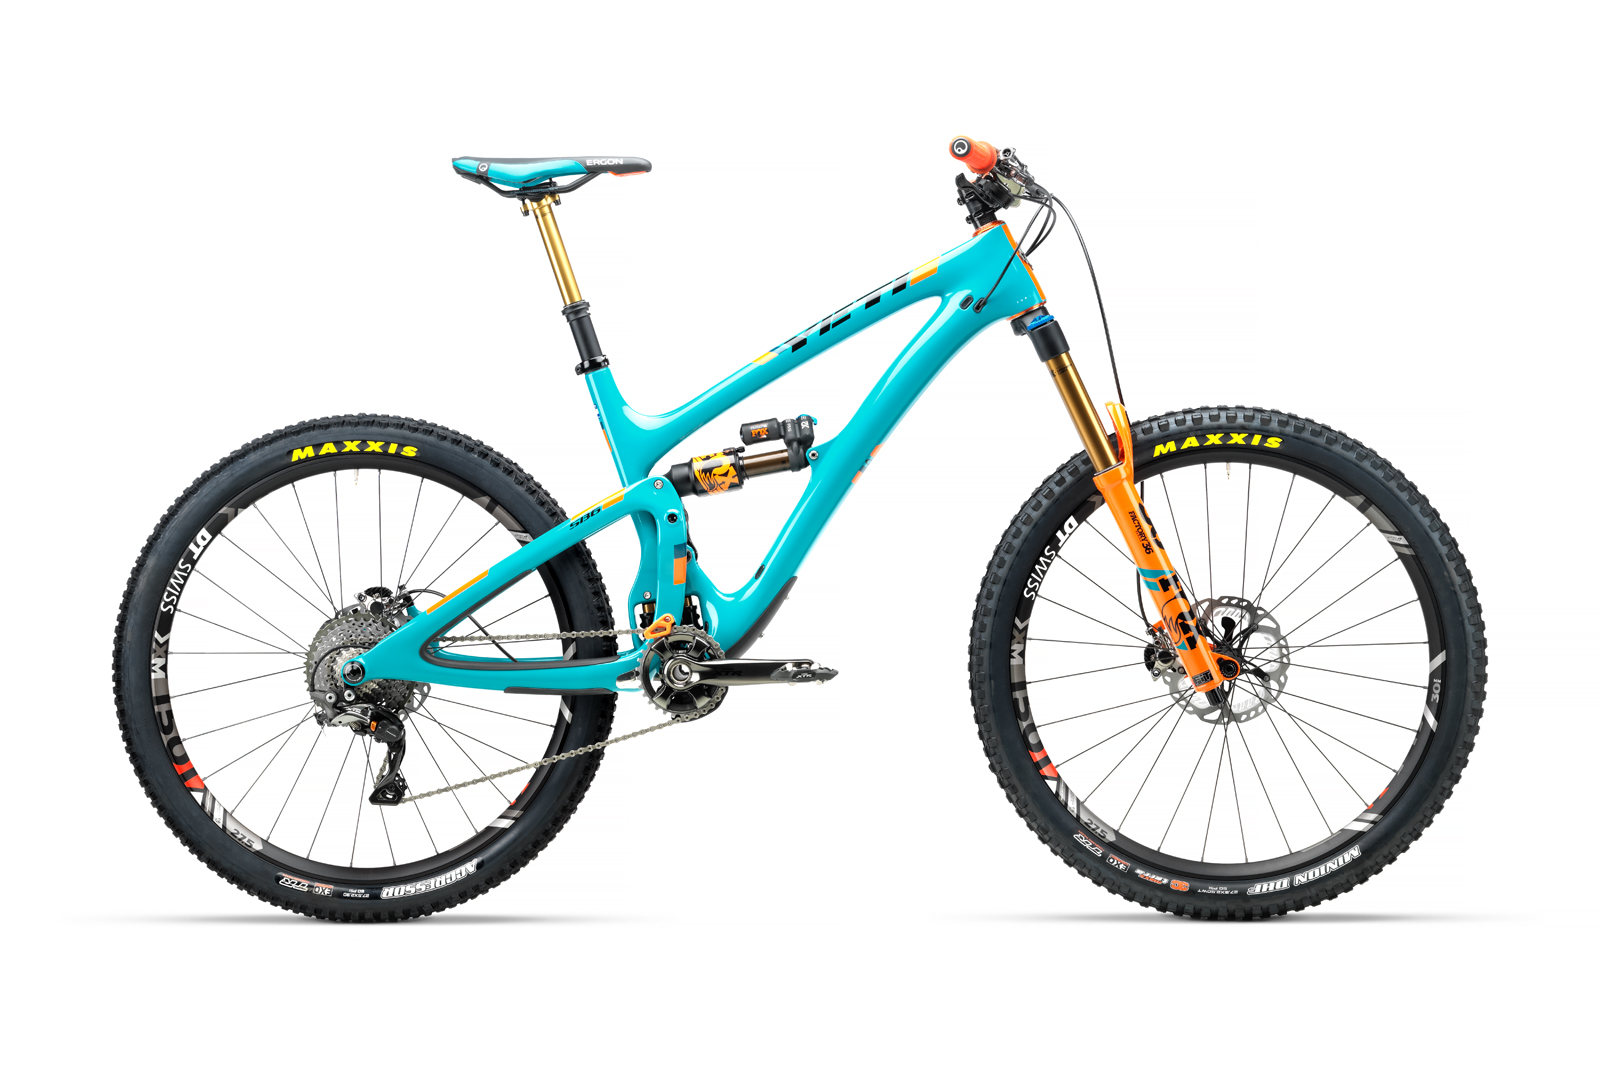 16002018_YetiCycles_SB6_TR